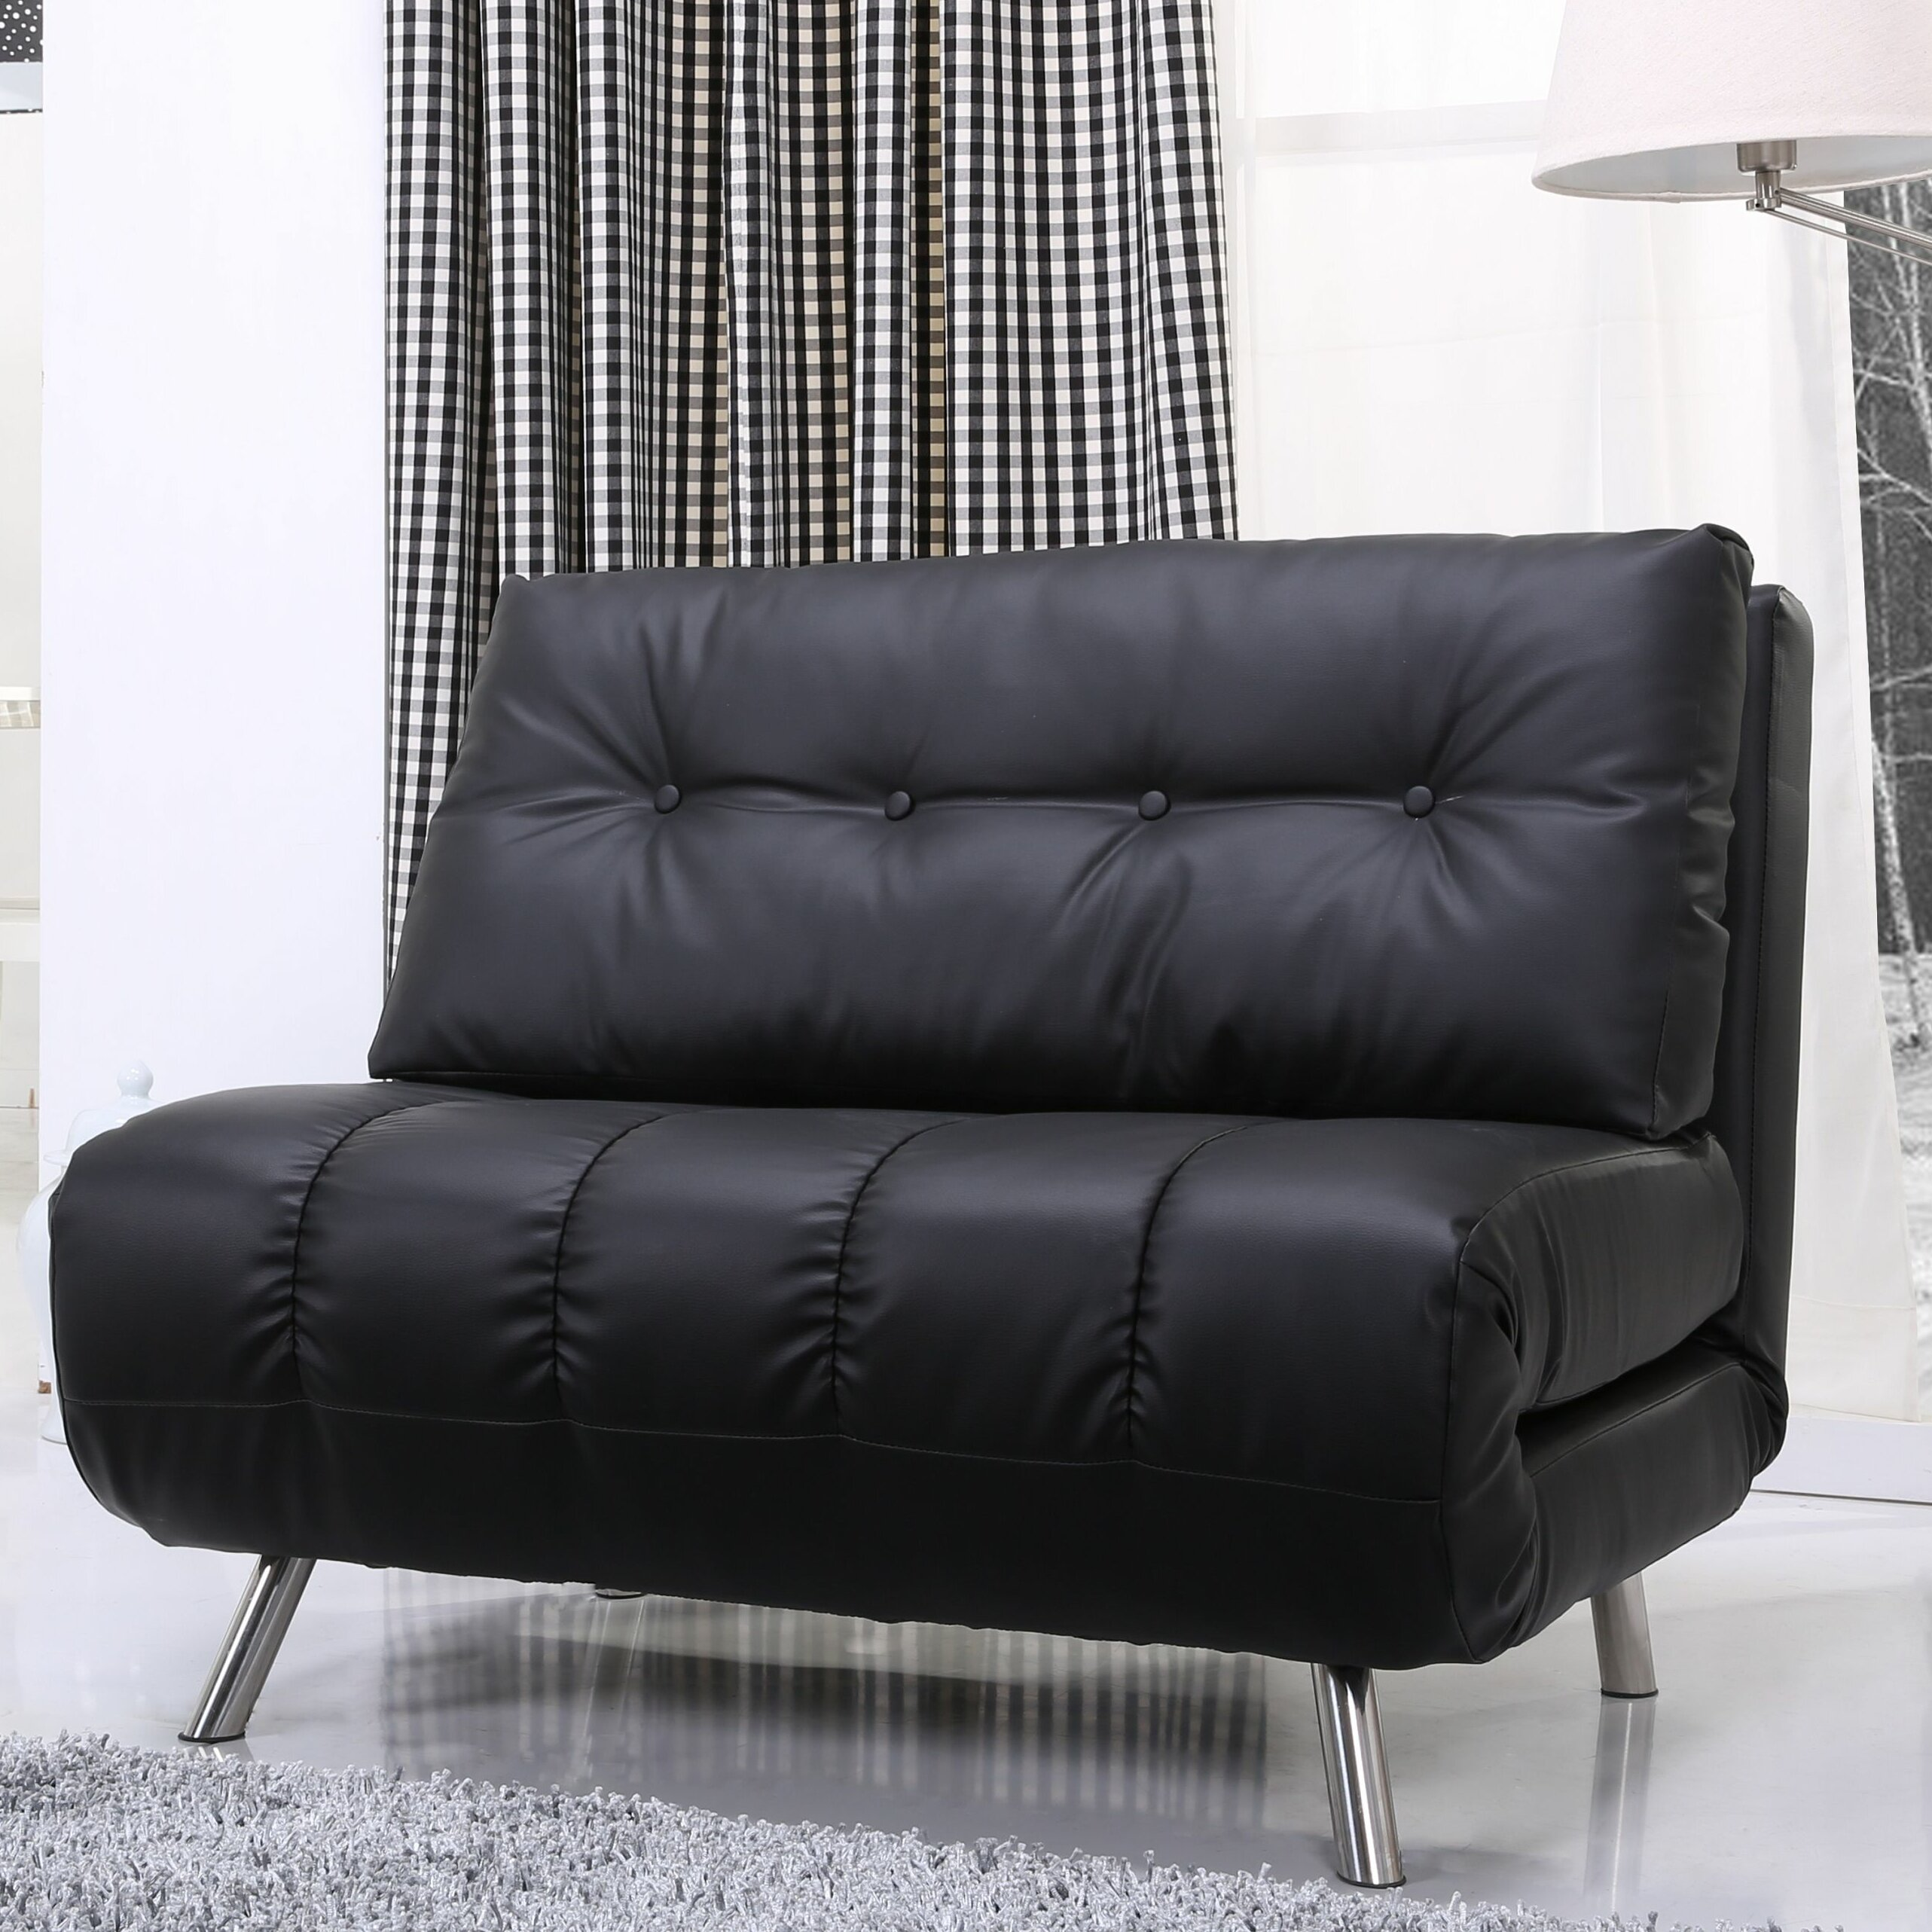 leader lifestyle romeo clic clac convertible futon chair. Black Bedroom Furniture Sets. Home Design Ideas